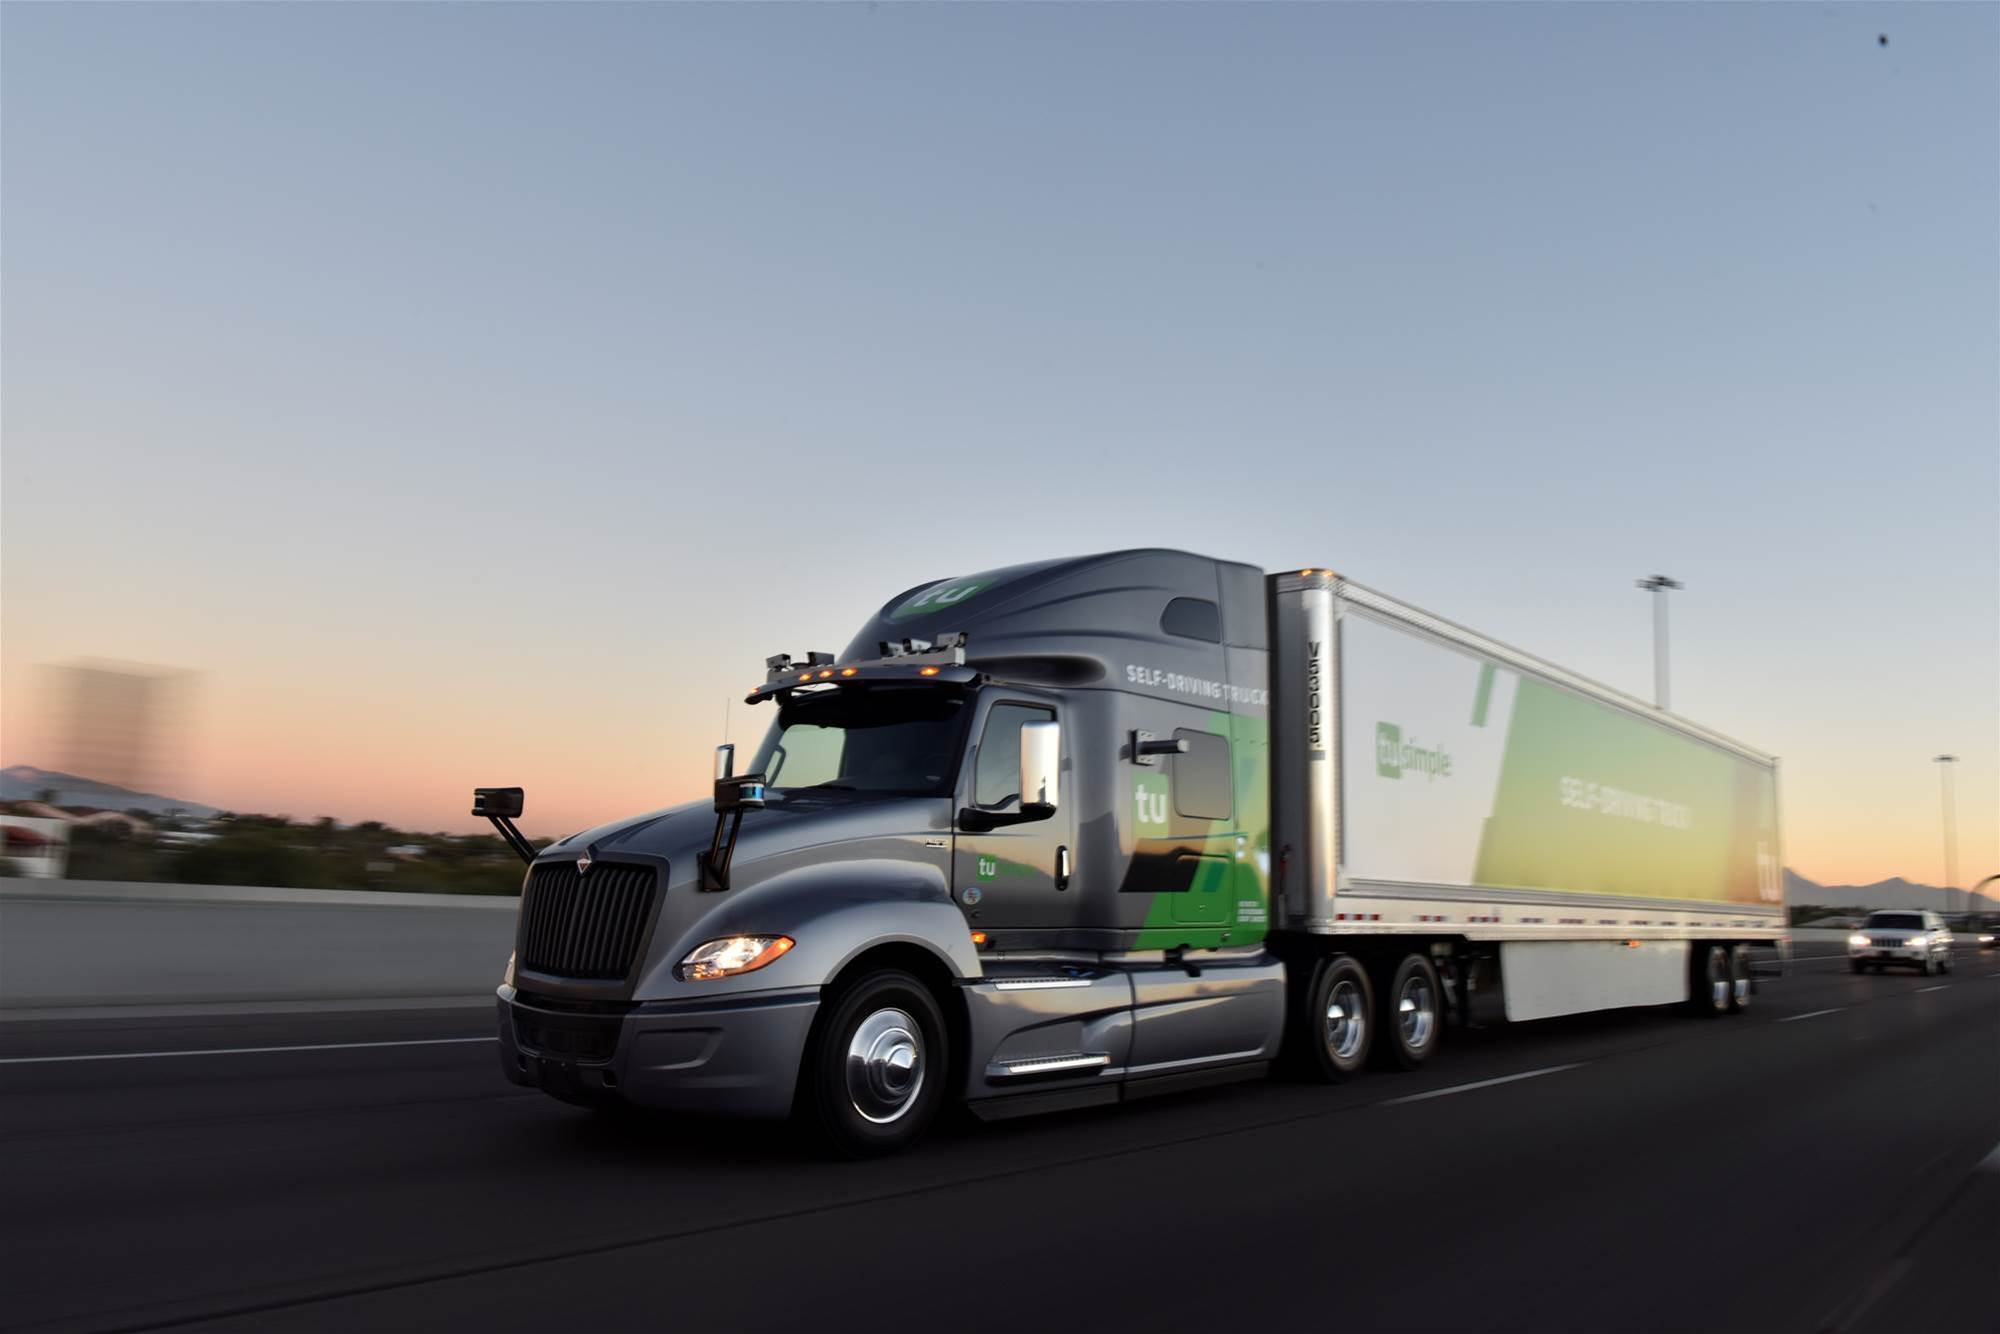 Self-driving trucks begin mail delivery test for US Postal Service